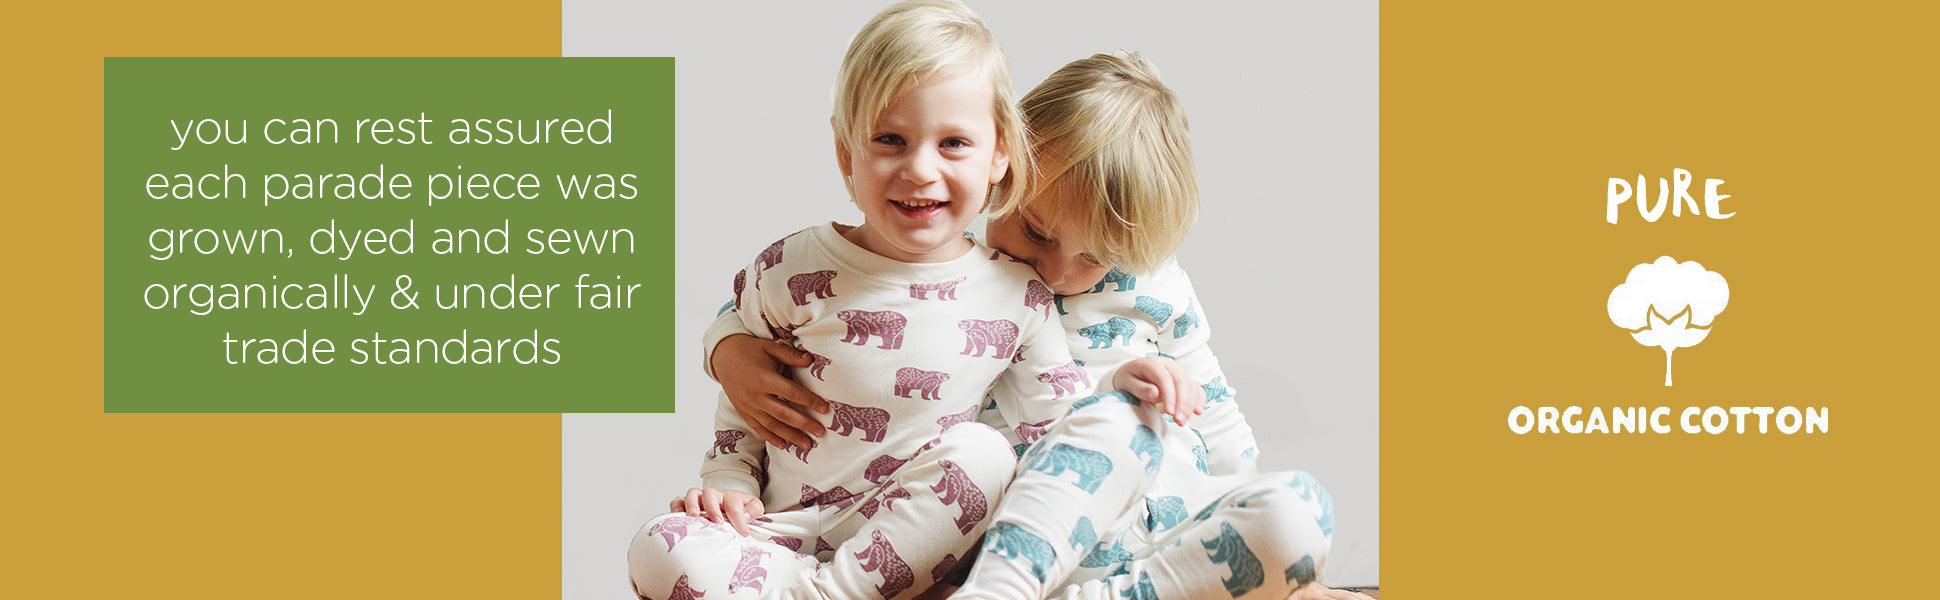 organic cotton jammies organic cotton kids jammies organic cotton baby jammies